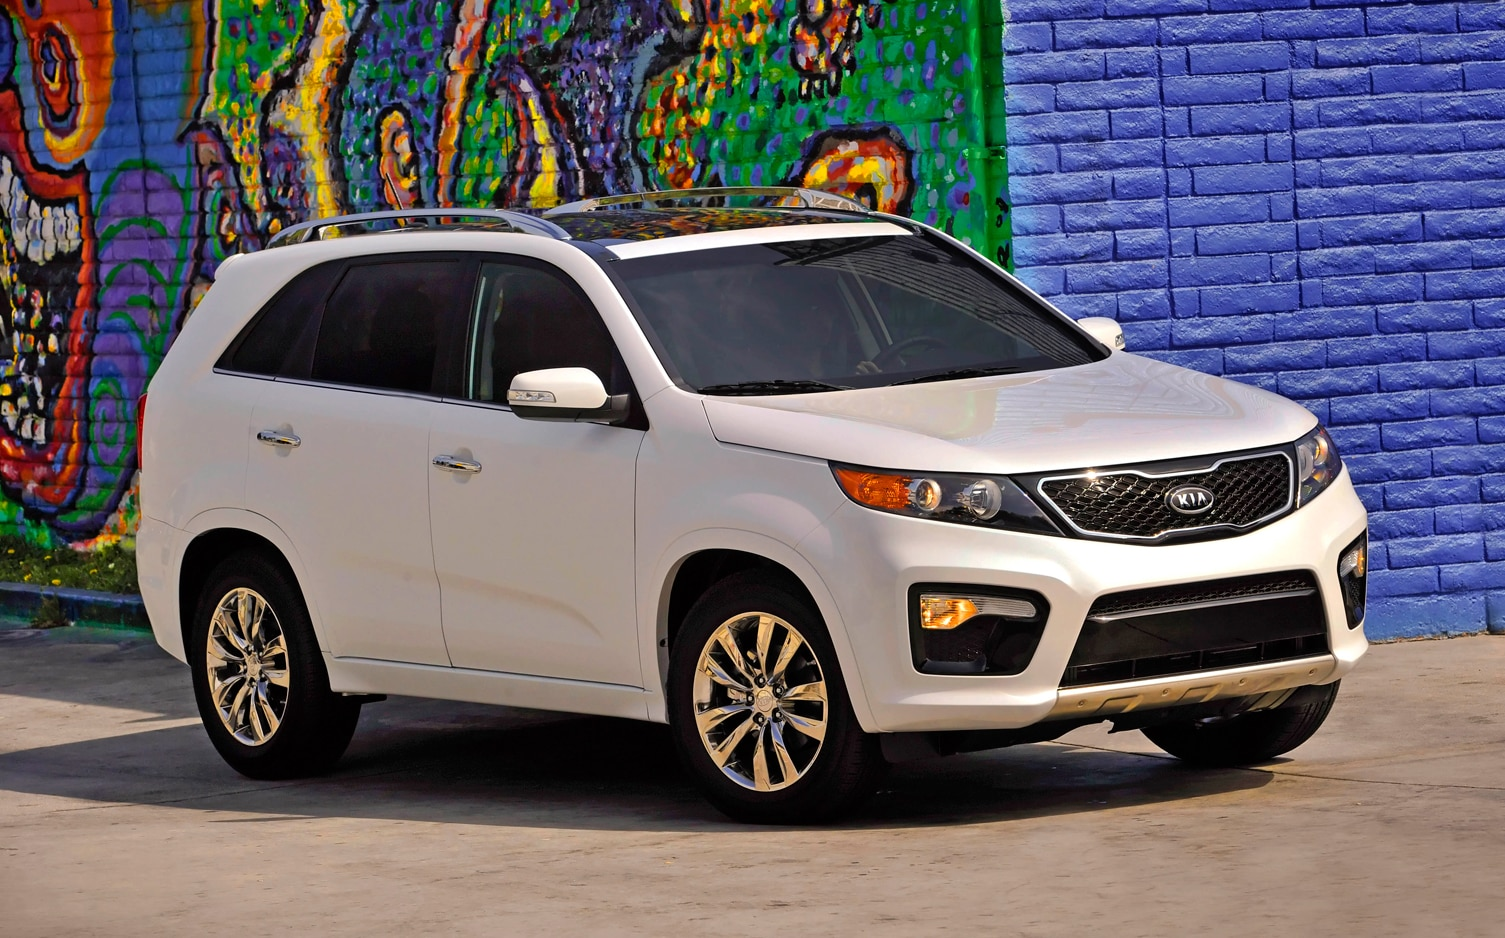 2012 Kia Sorento Front Right Side View 7